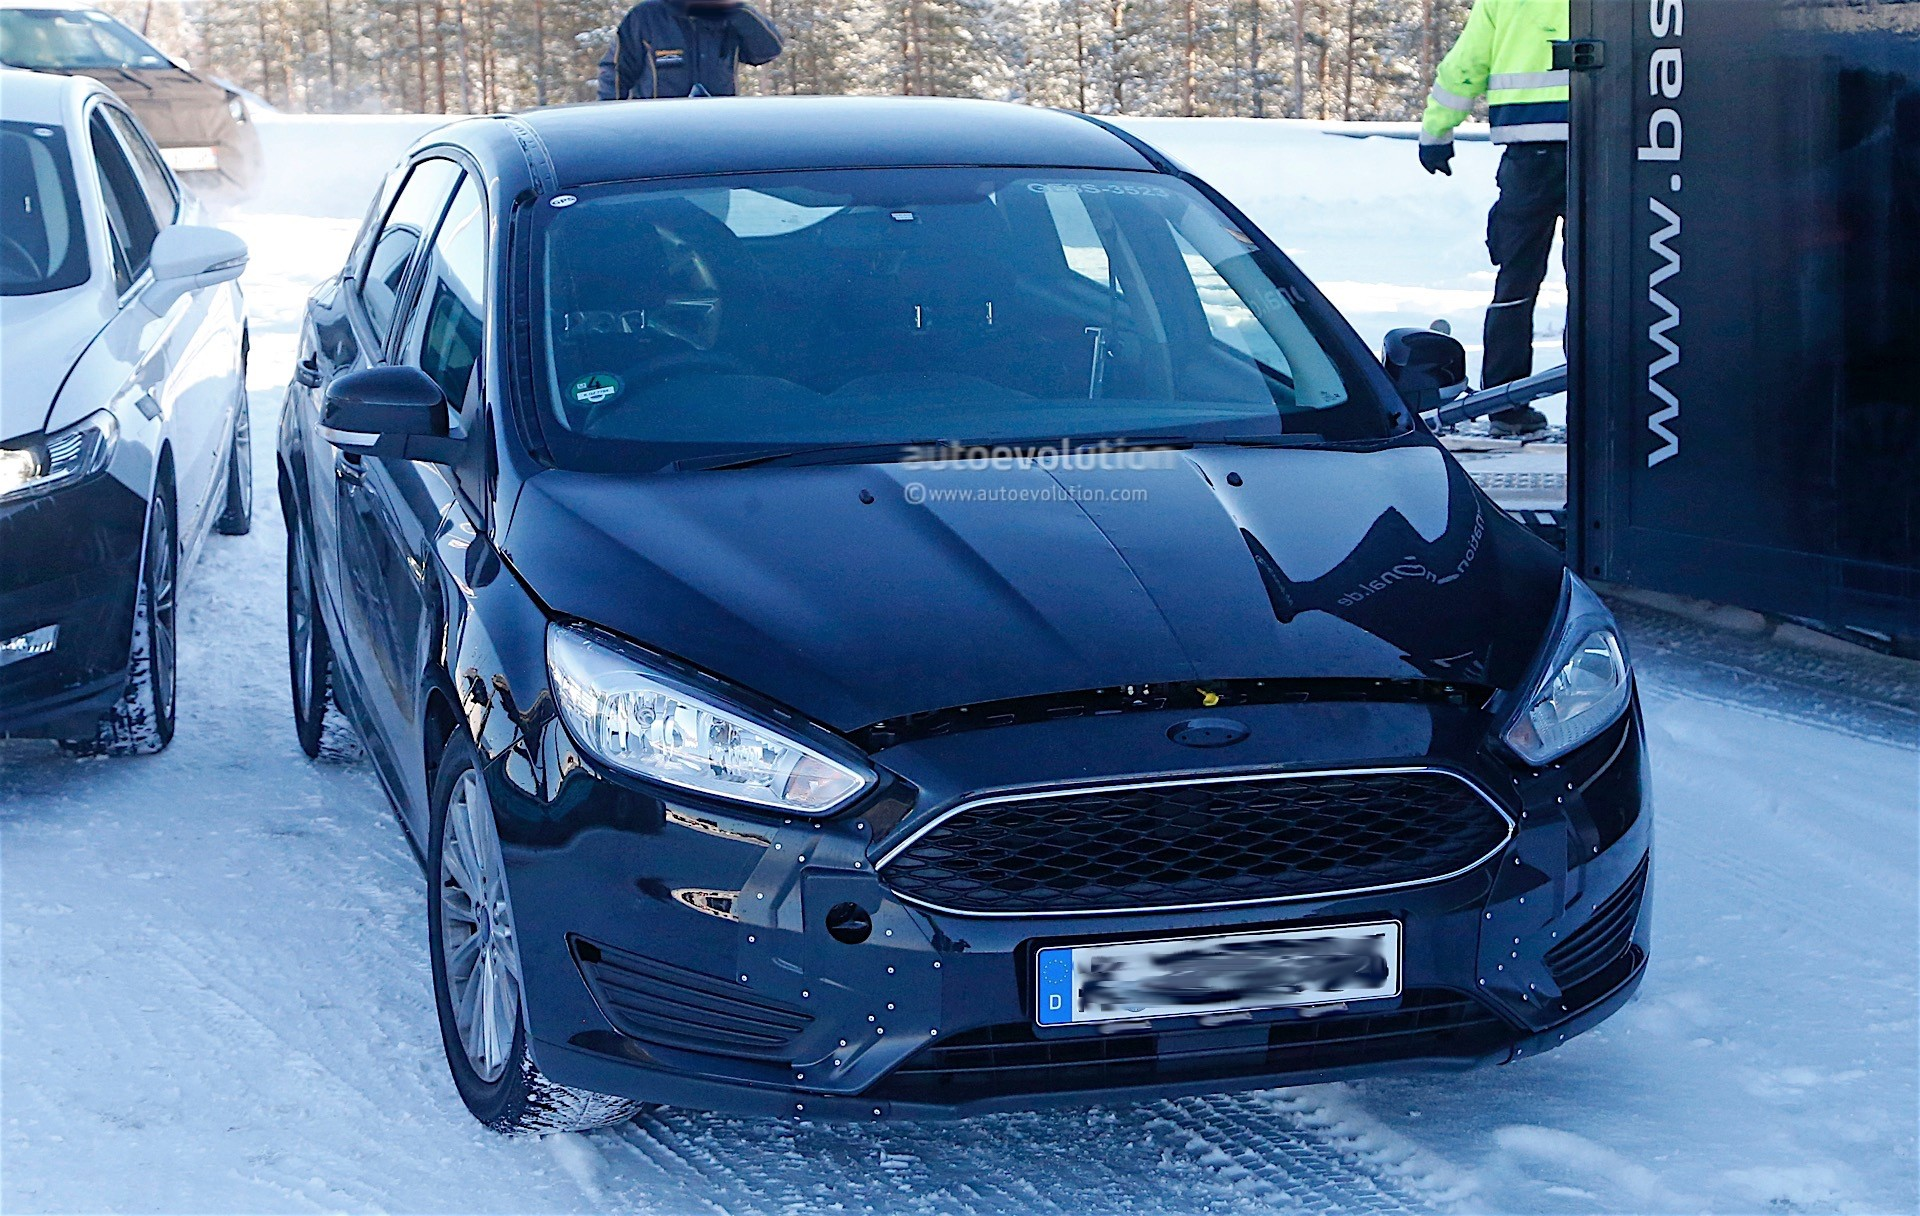 Performance Auto Body >> Ford Testing Next-Generation Focus in Winter Conditions - First Spyshots - autoevolution